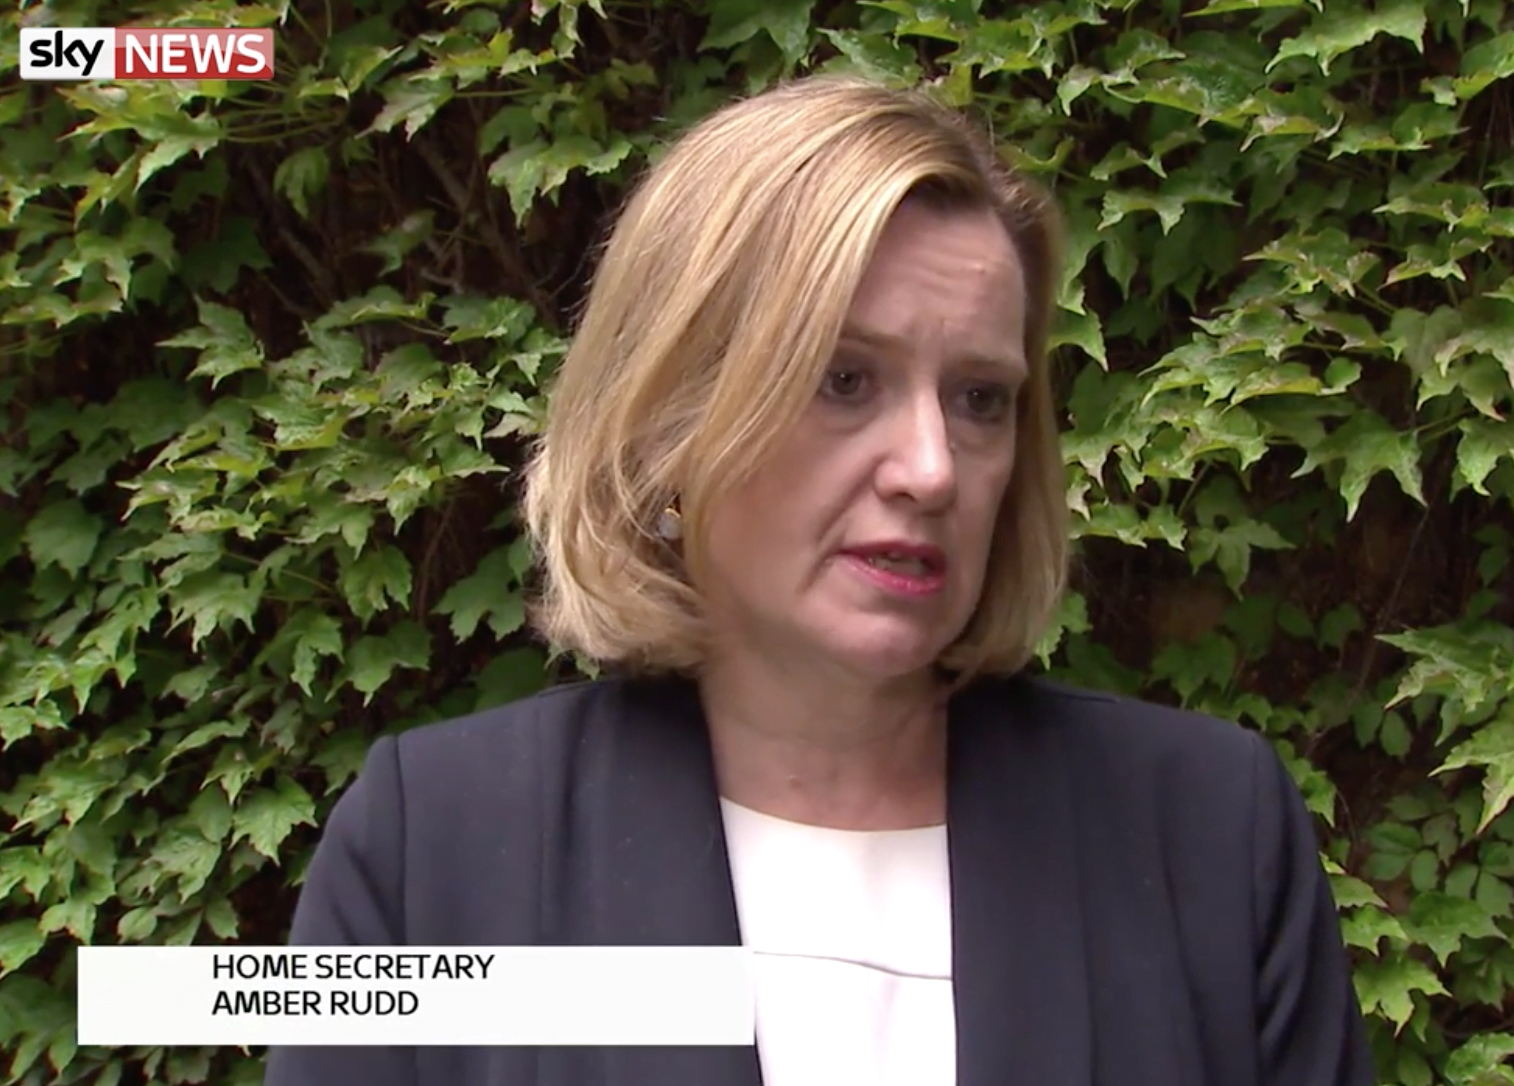 Home Secretary Amber Rudd has lead givernment's response to cyber attacks